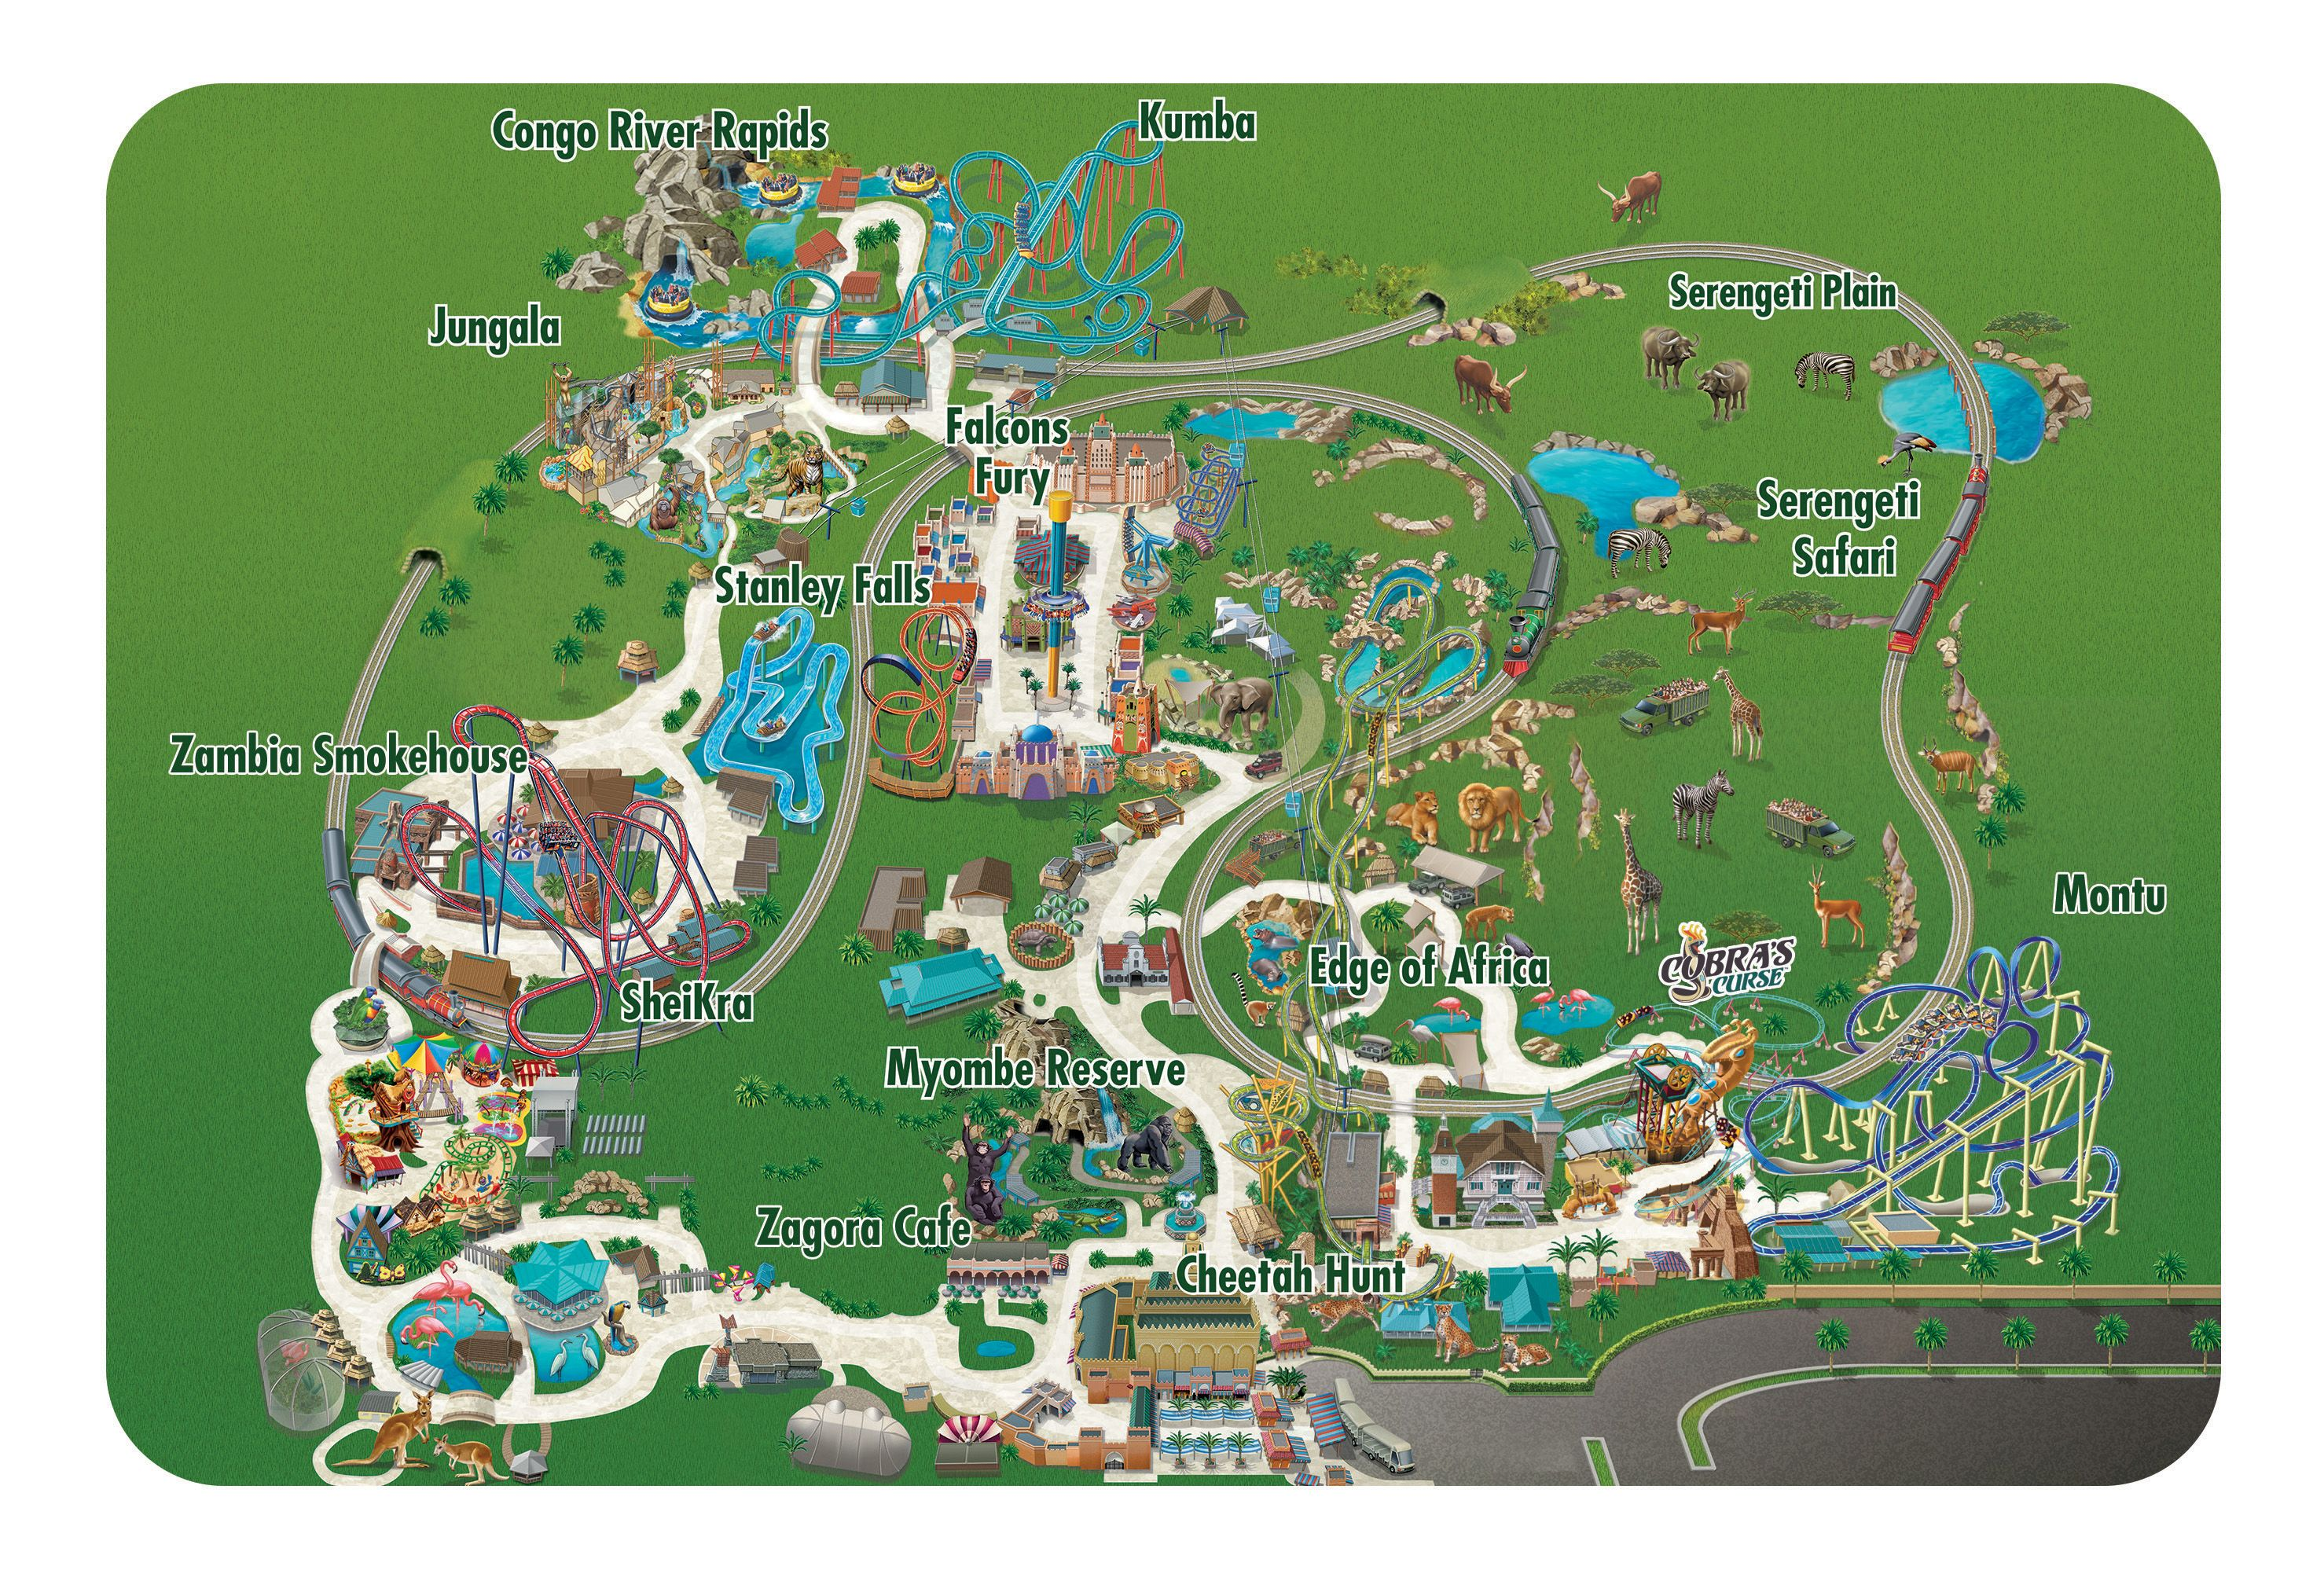 View 3 Parks SeaWorld, Aquatica And Busch Gardens Ticket For The Price Of 2! Good Looking